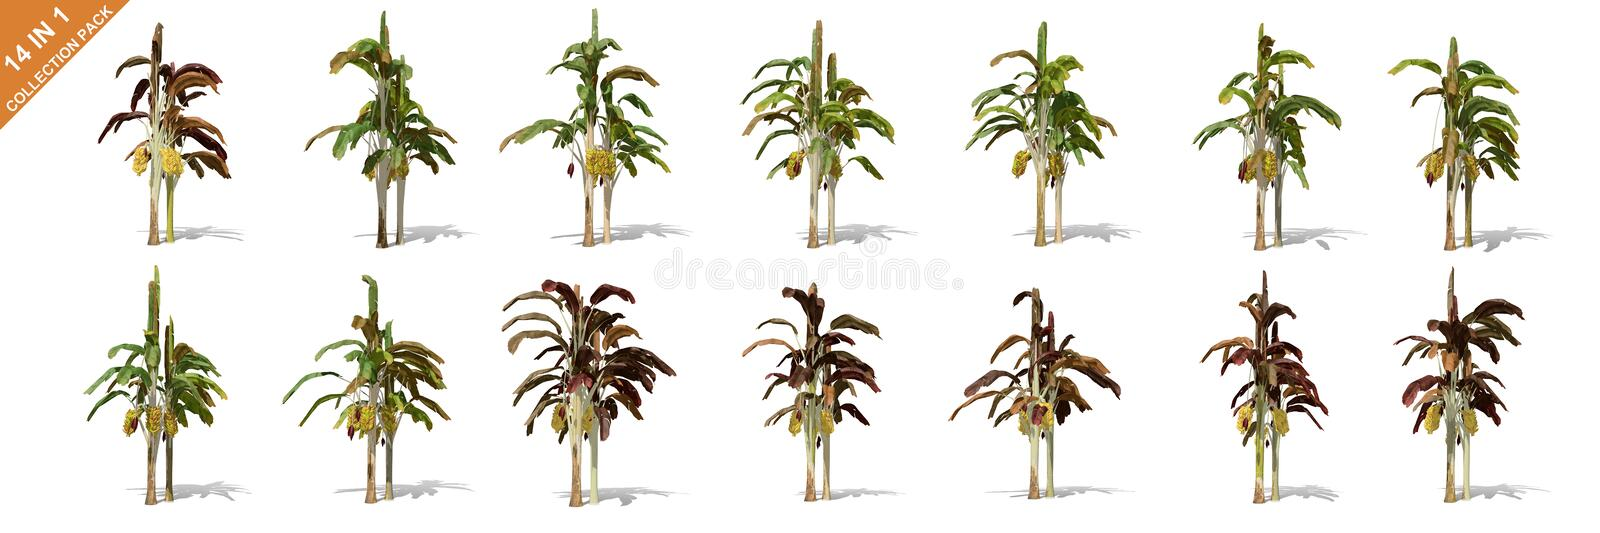 3D rendering - 14 in 1 collection of banana trees isolated over a white background vector illustration